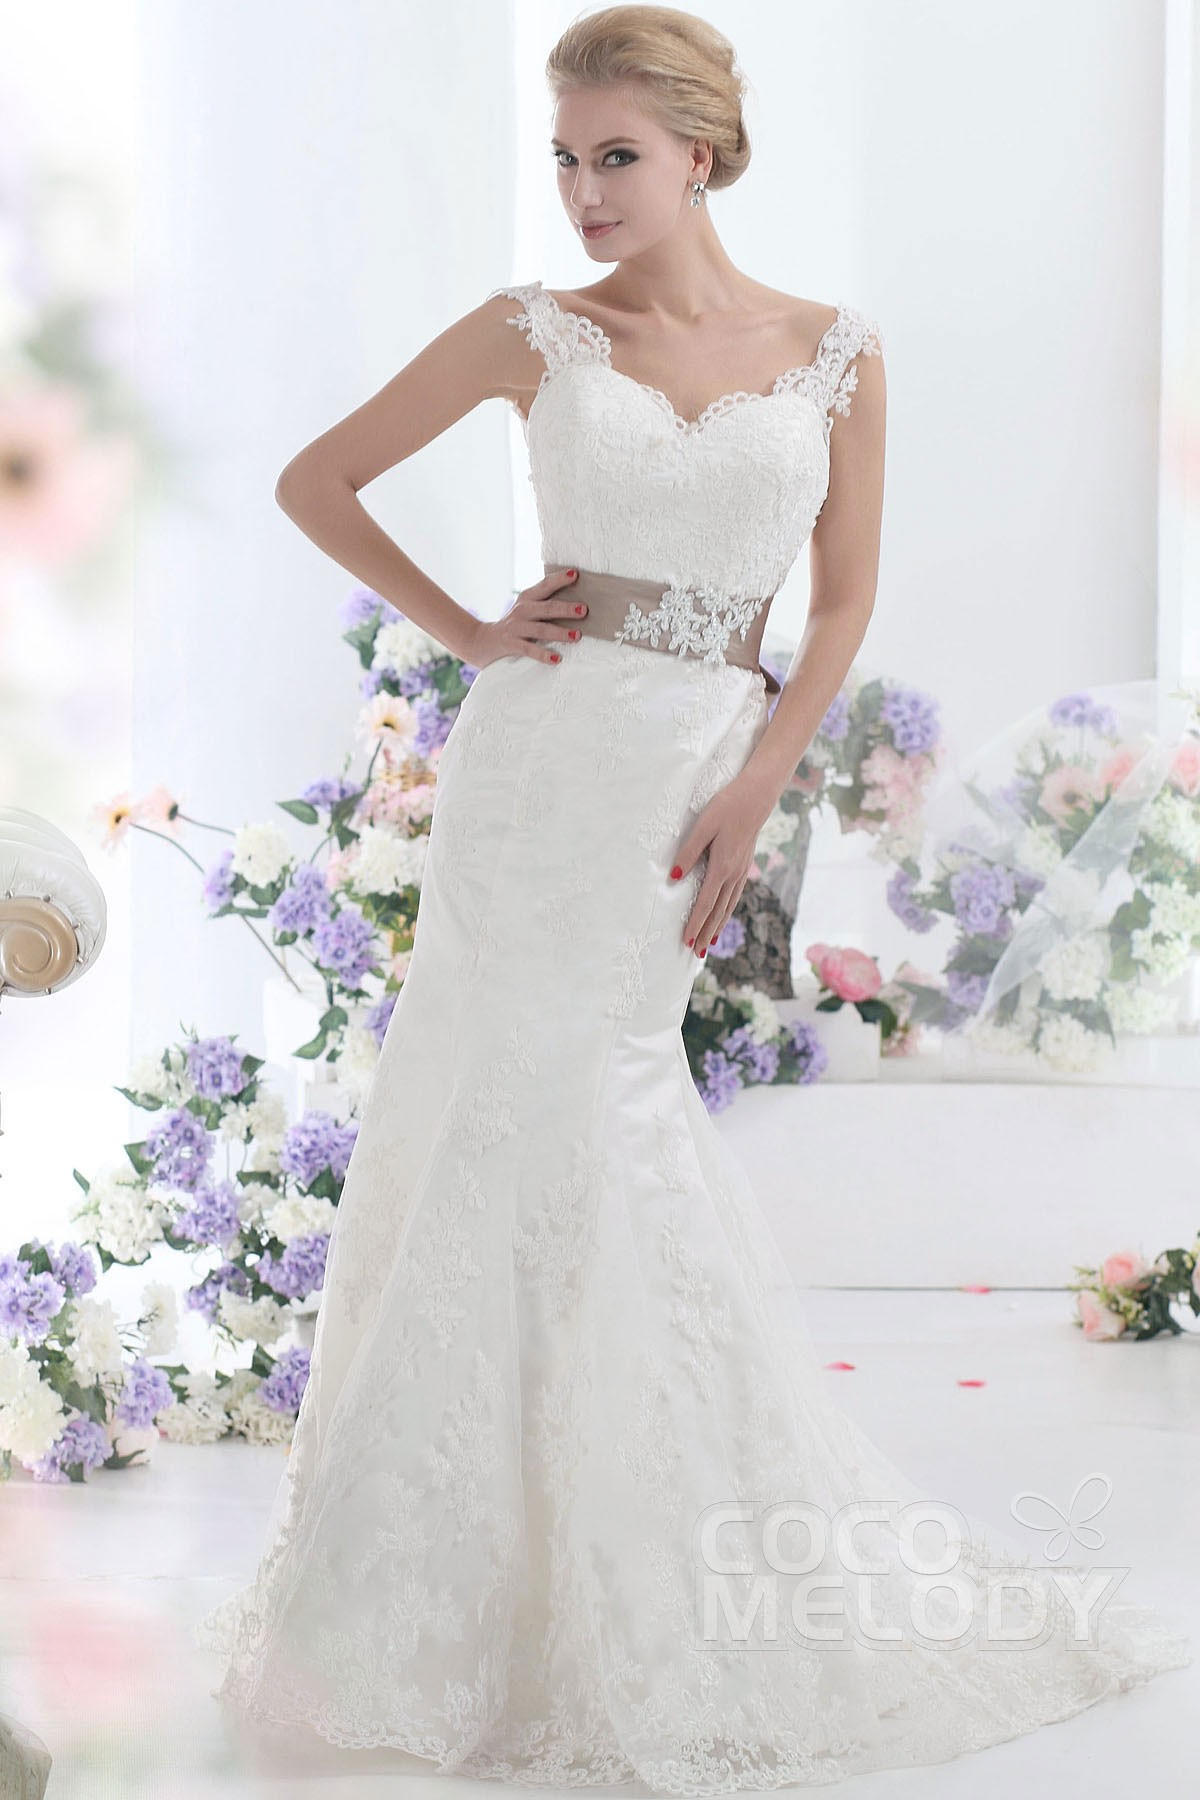 Cocomelody: Trumpet-Mermaid Sweep-Brush Train Lace Wedding Dress ...